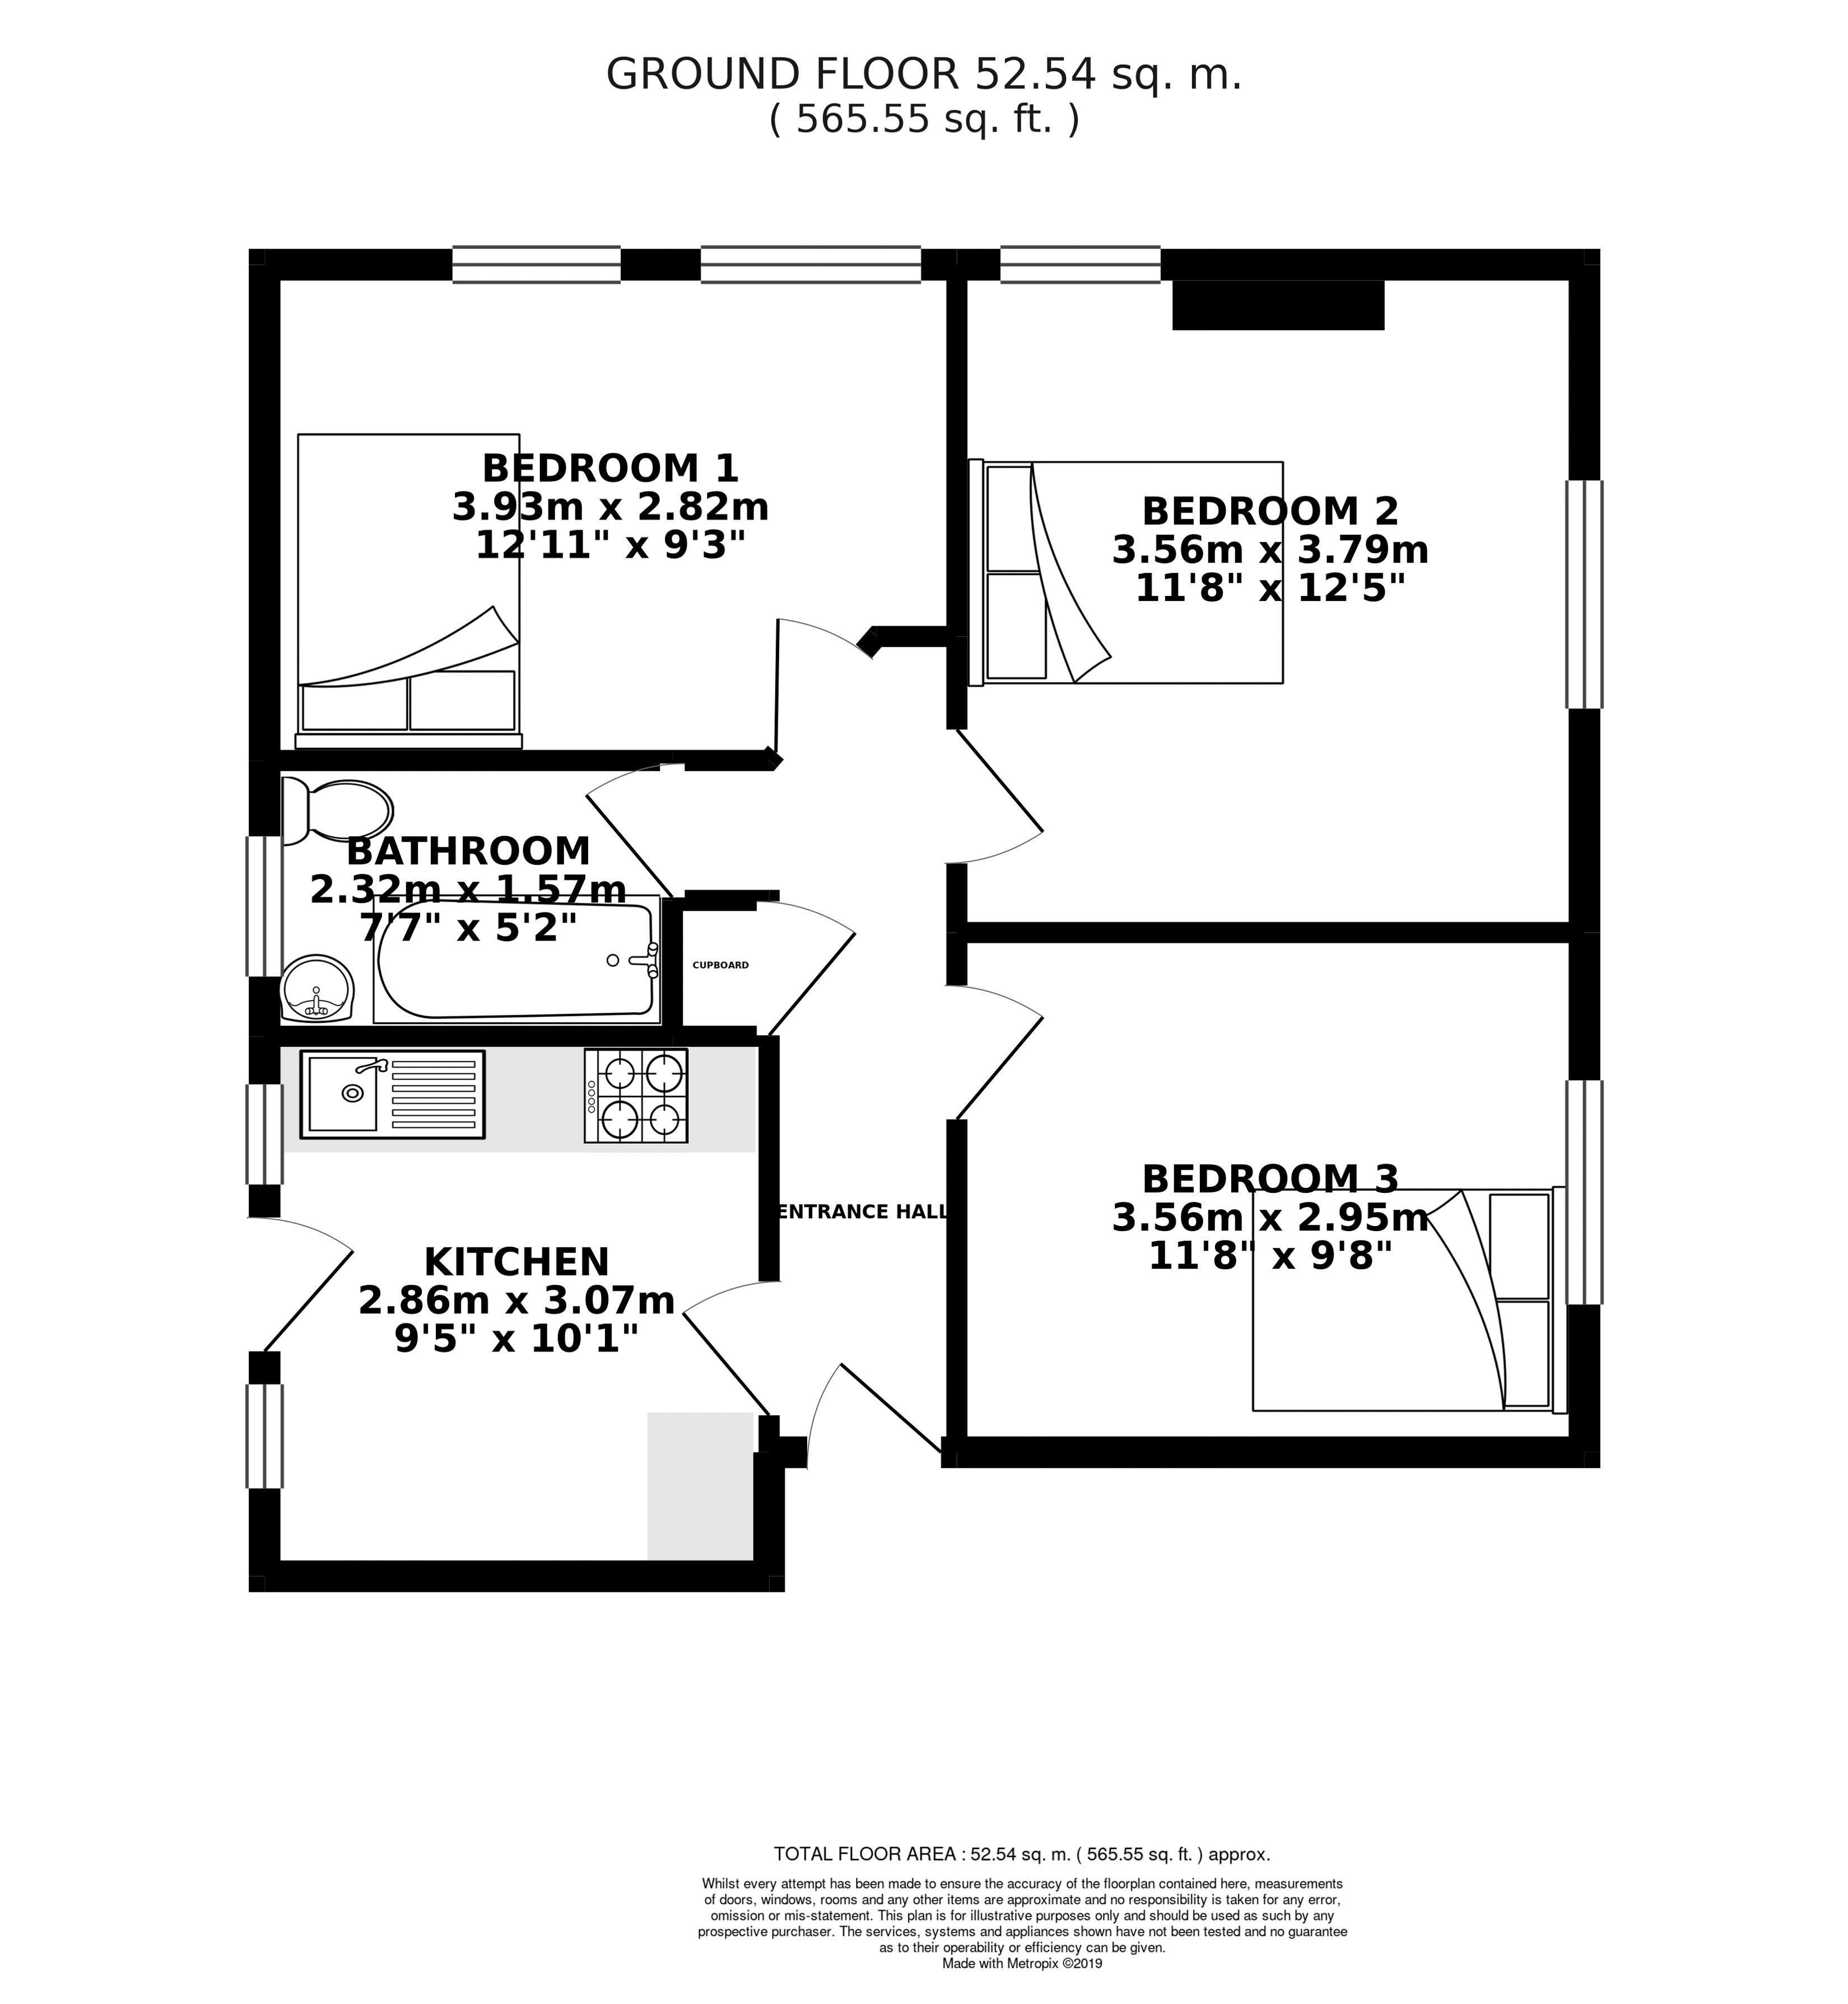 Floor plans for Park Crescent Place, Brighton property for sale in Lewes Road South, Brighton by Coapt